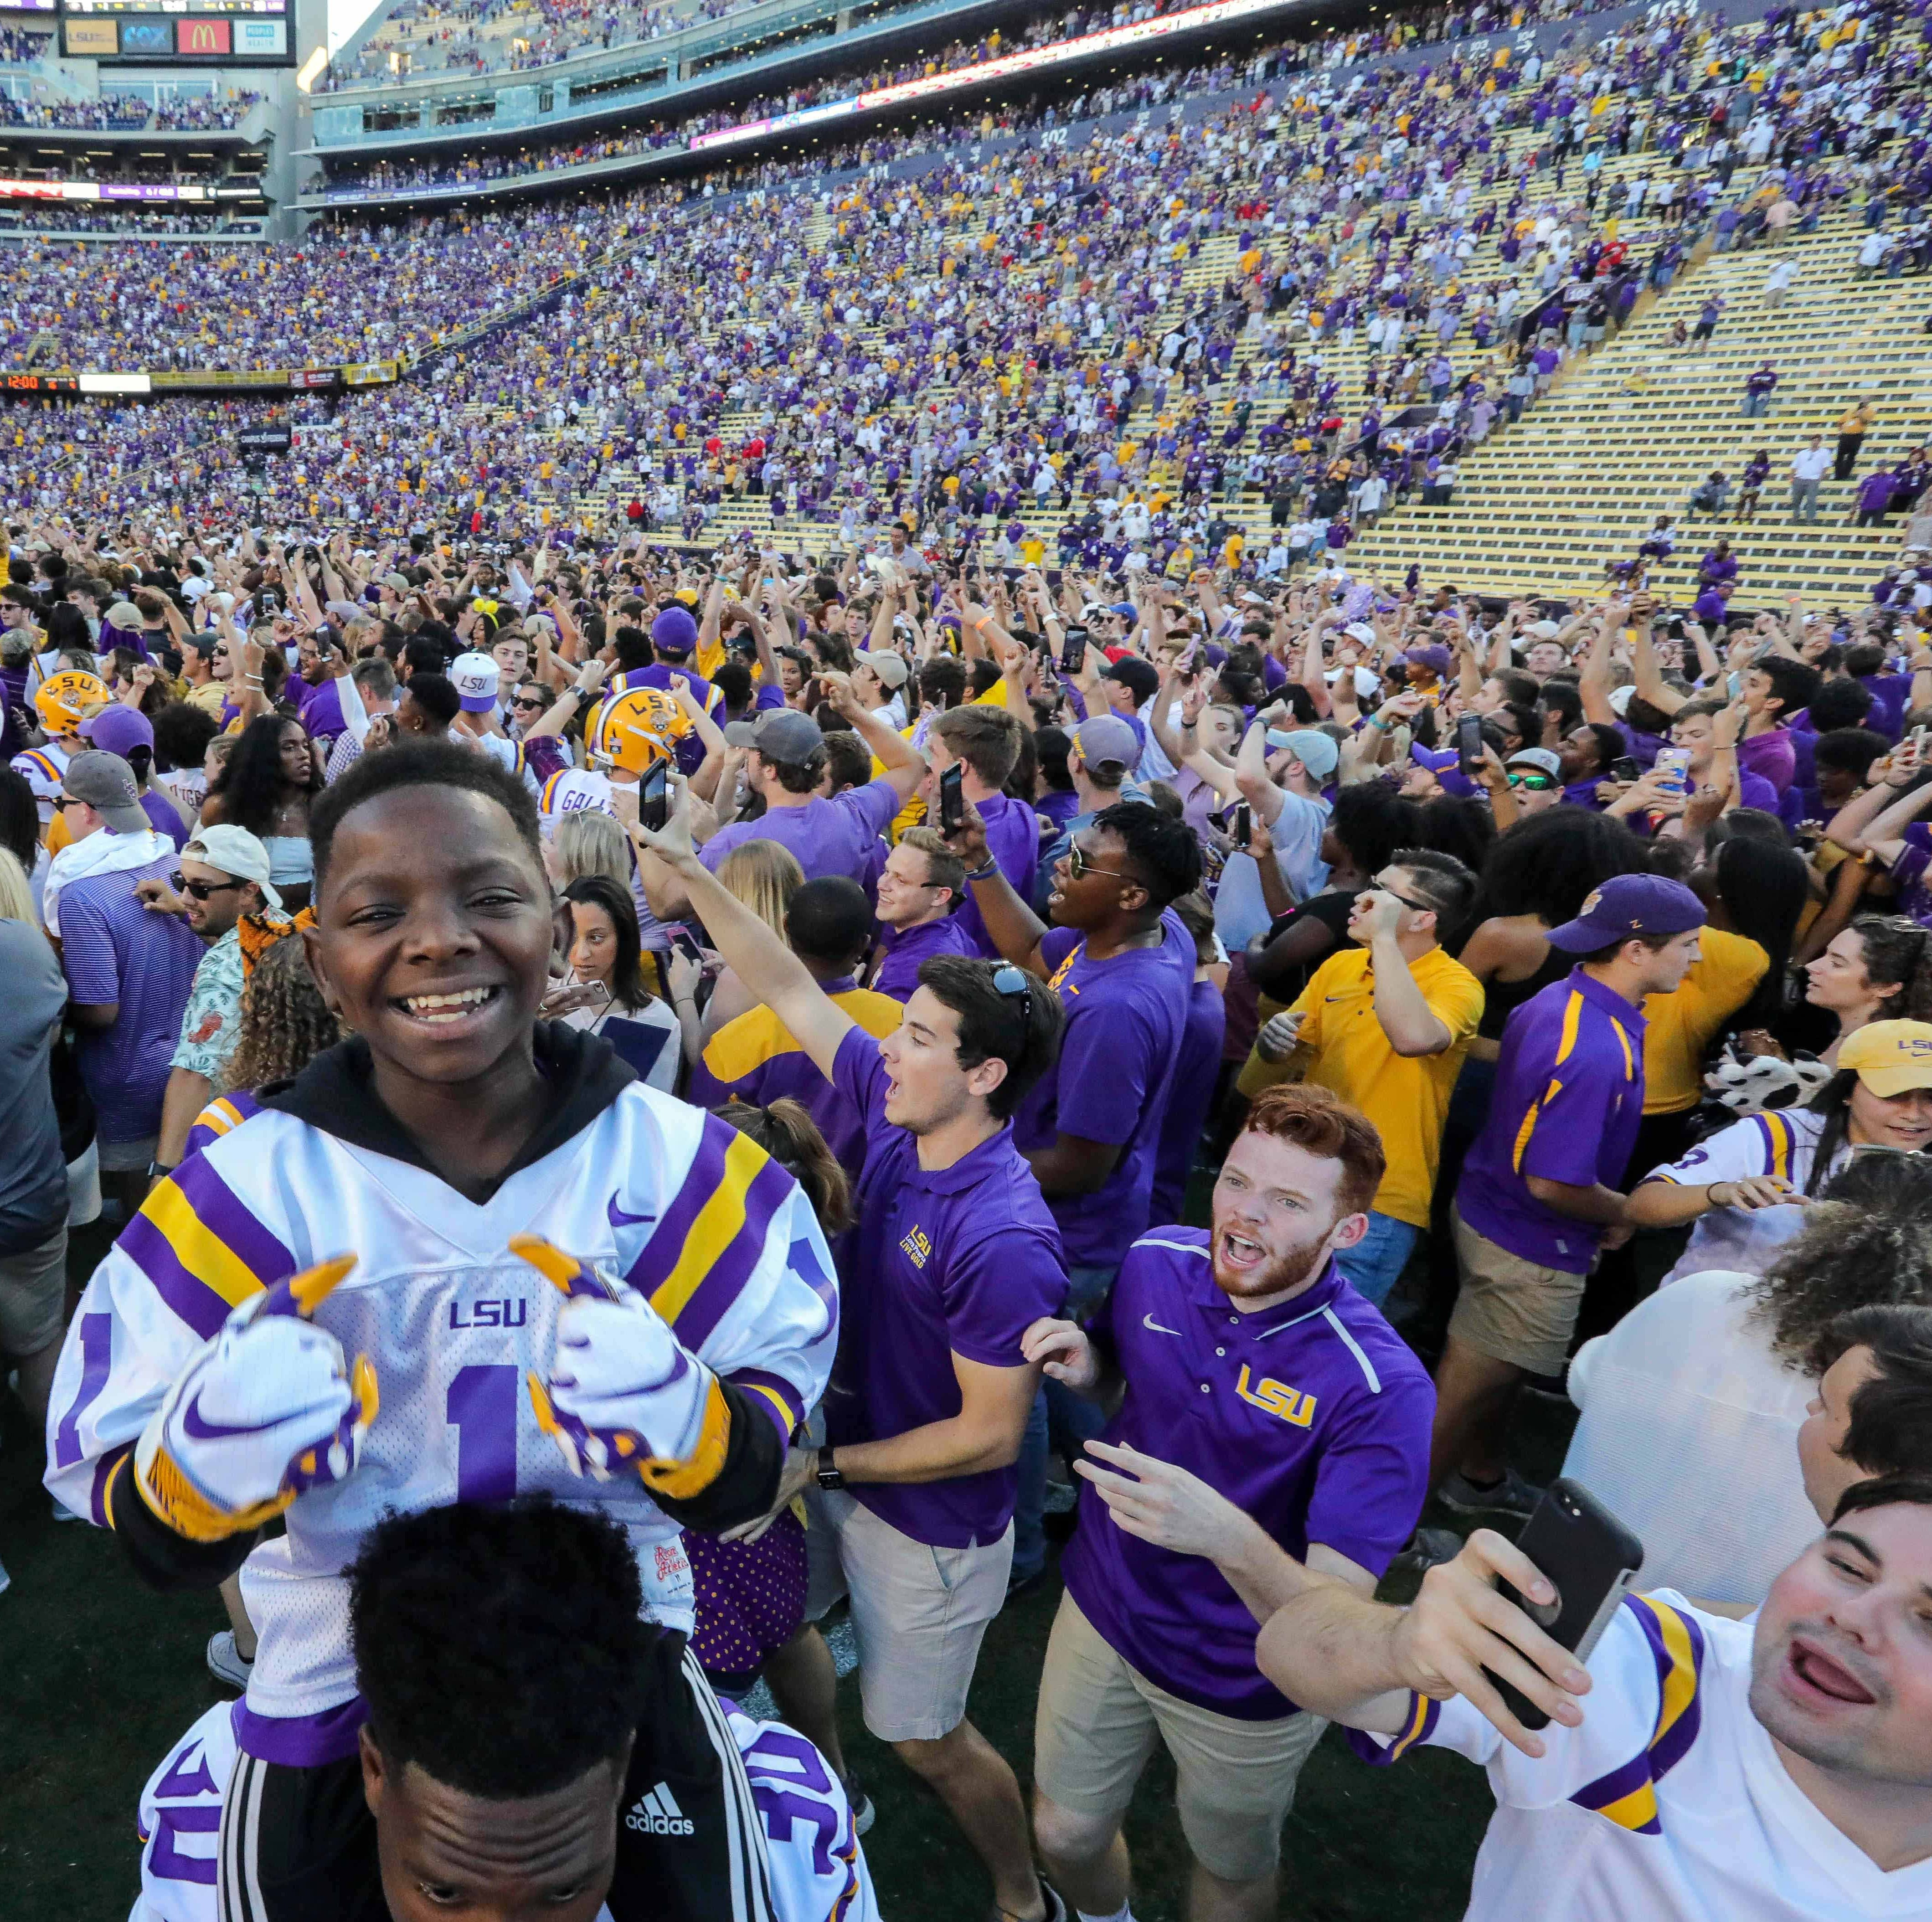 SEC fines LSU $100,000 after fans storm field following Georgia win